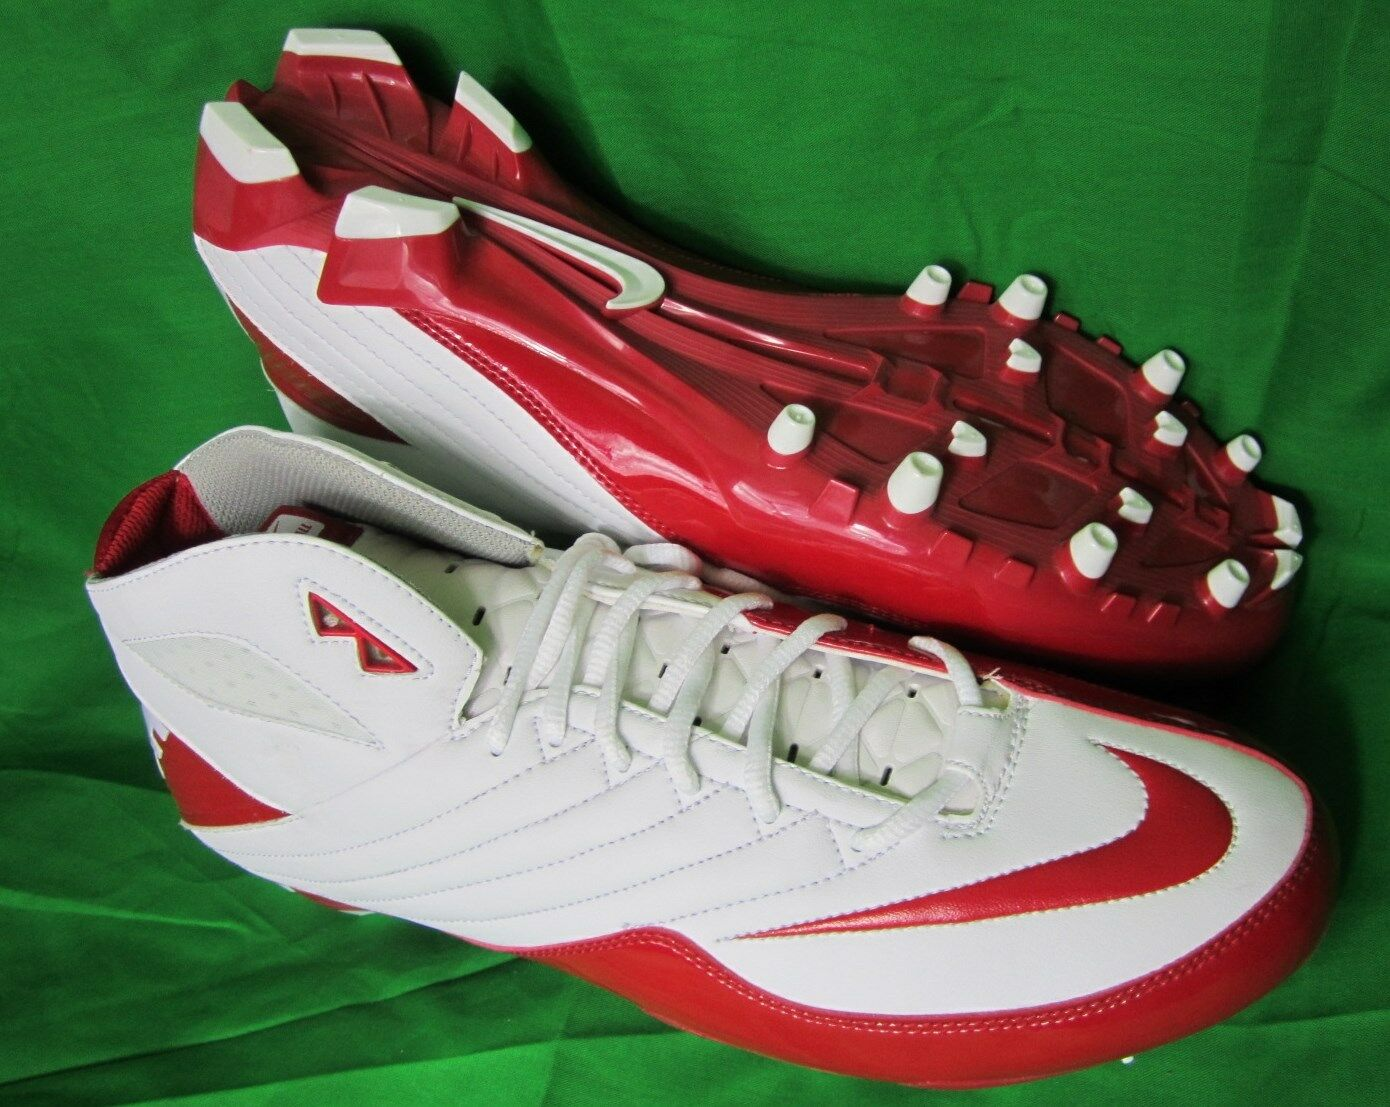 Shoes, NIKE US14 NEW 3/4 Cleats SUPER SPEED 396254 White Red UK13 EUR48,5 CM32 Seasonal price cuts, discount benefits